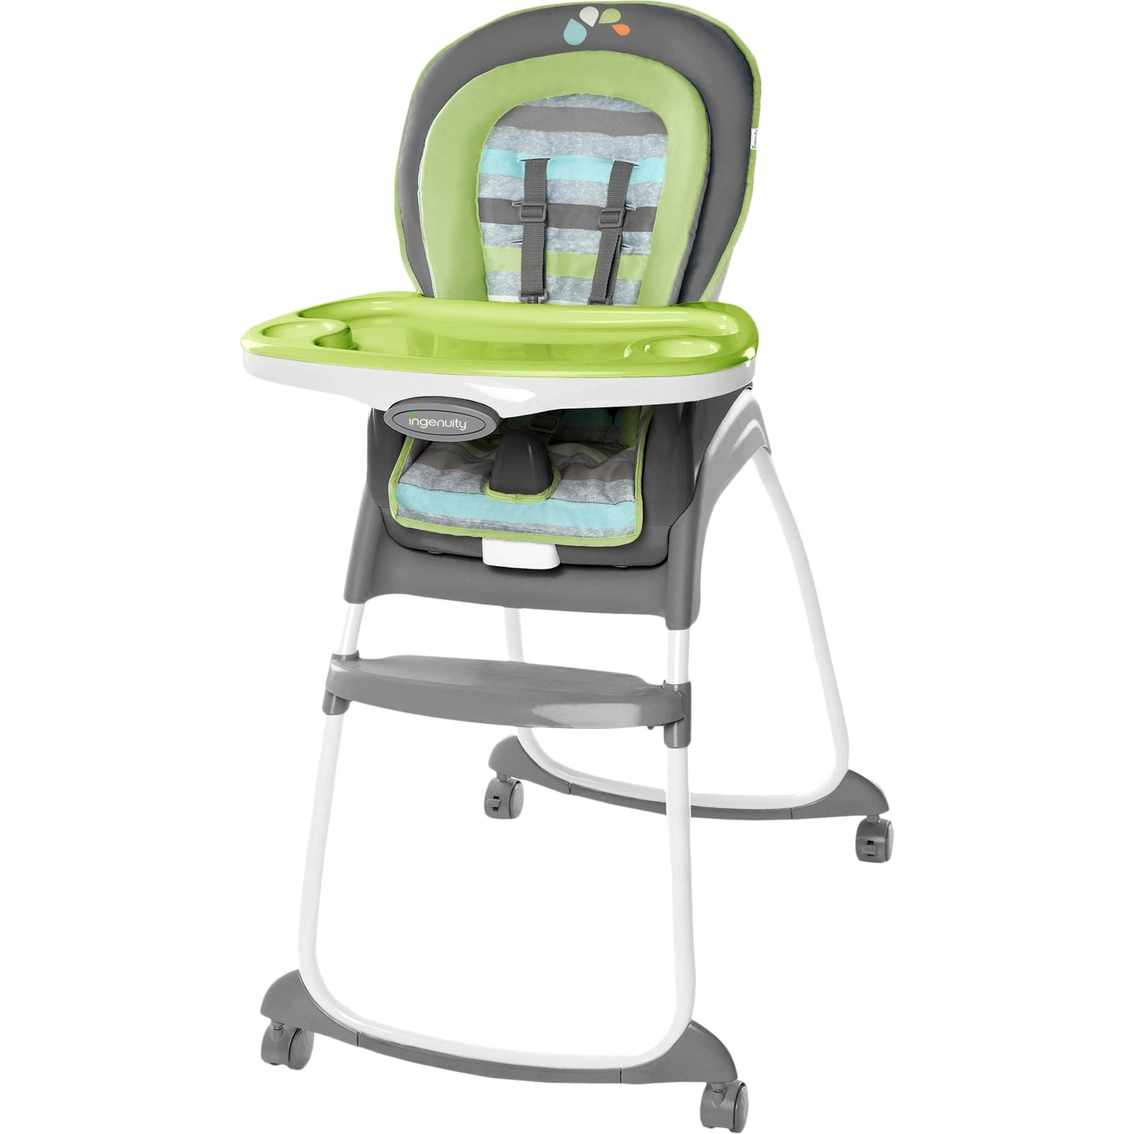 deluxe ideas chair sahara x star trio ingenuity bright in starts dimensions for high chairs intended